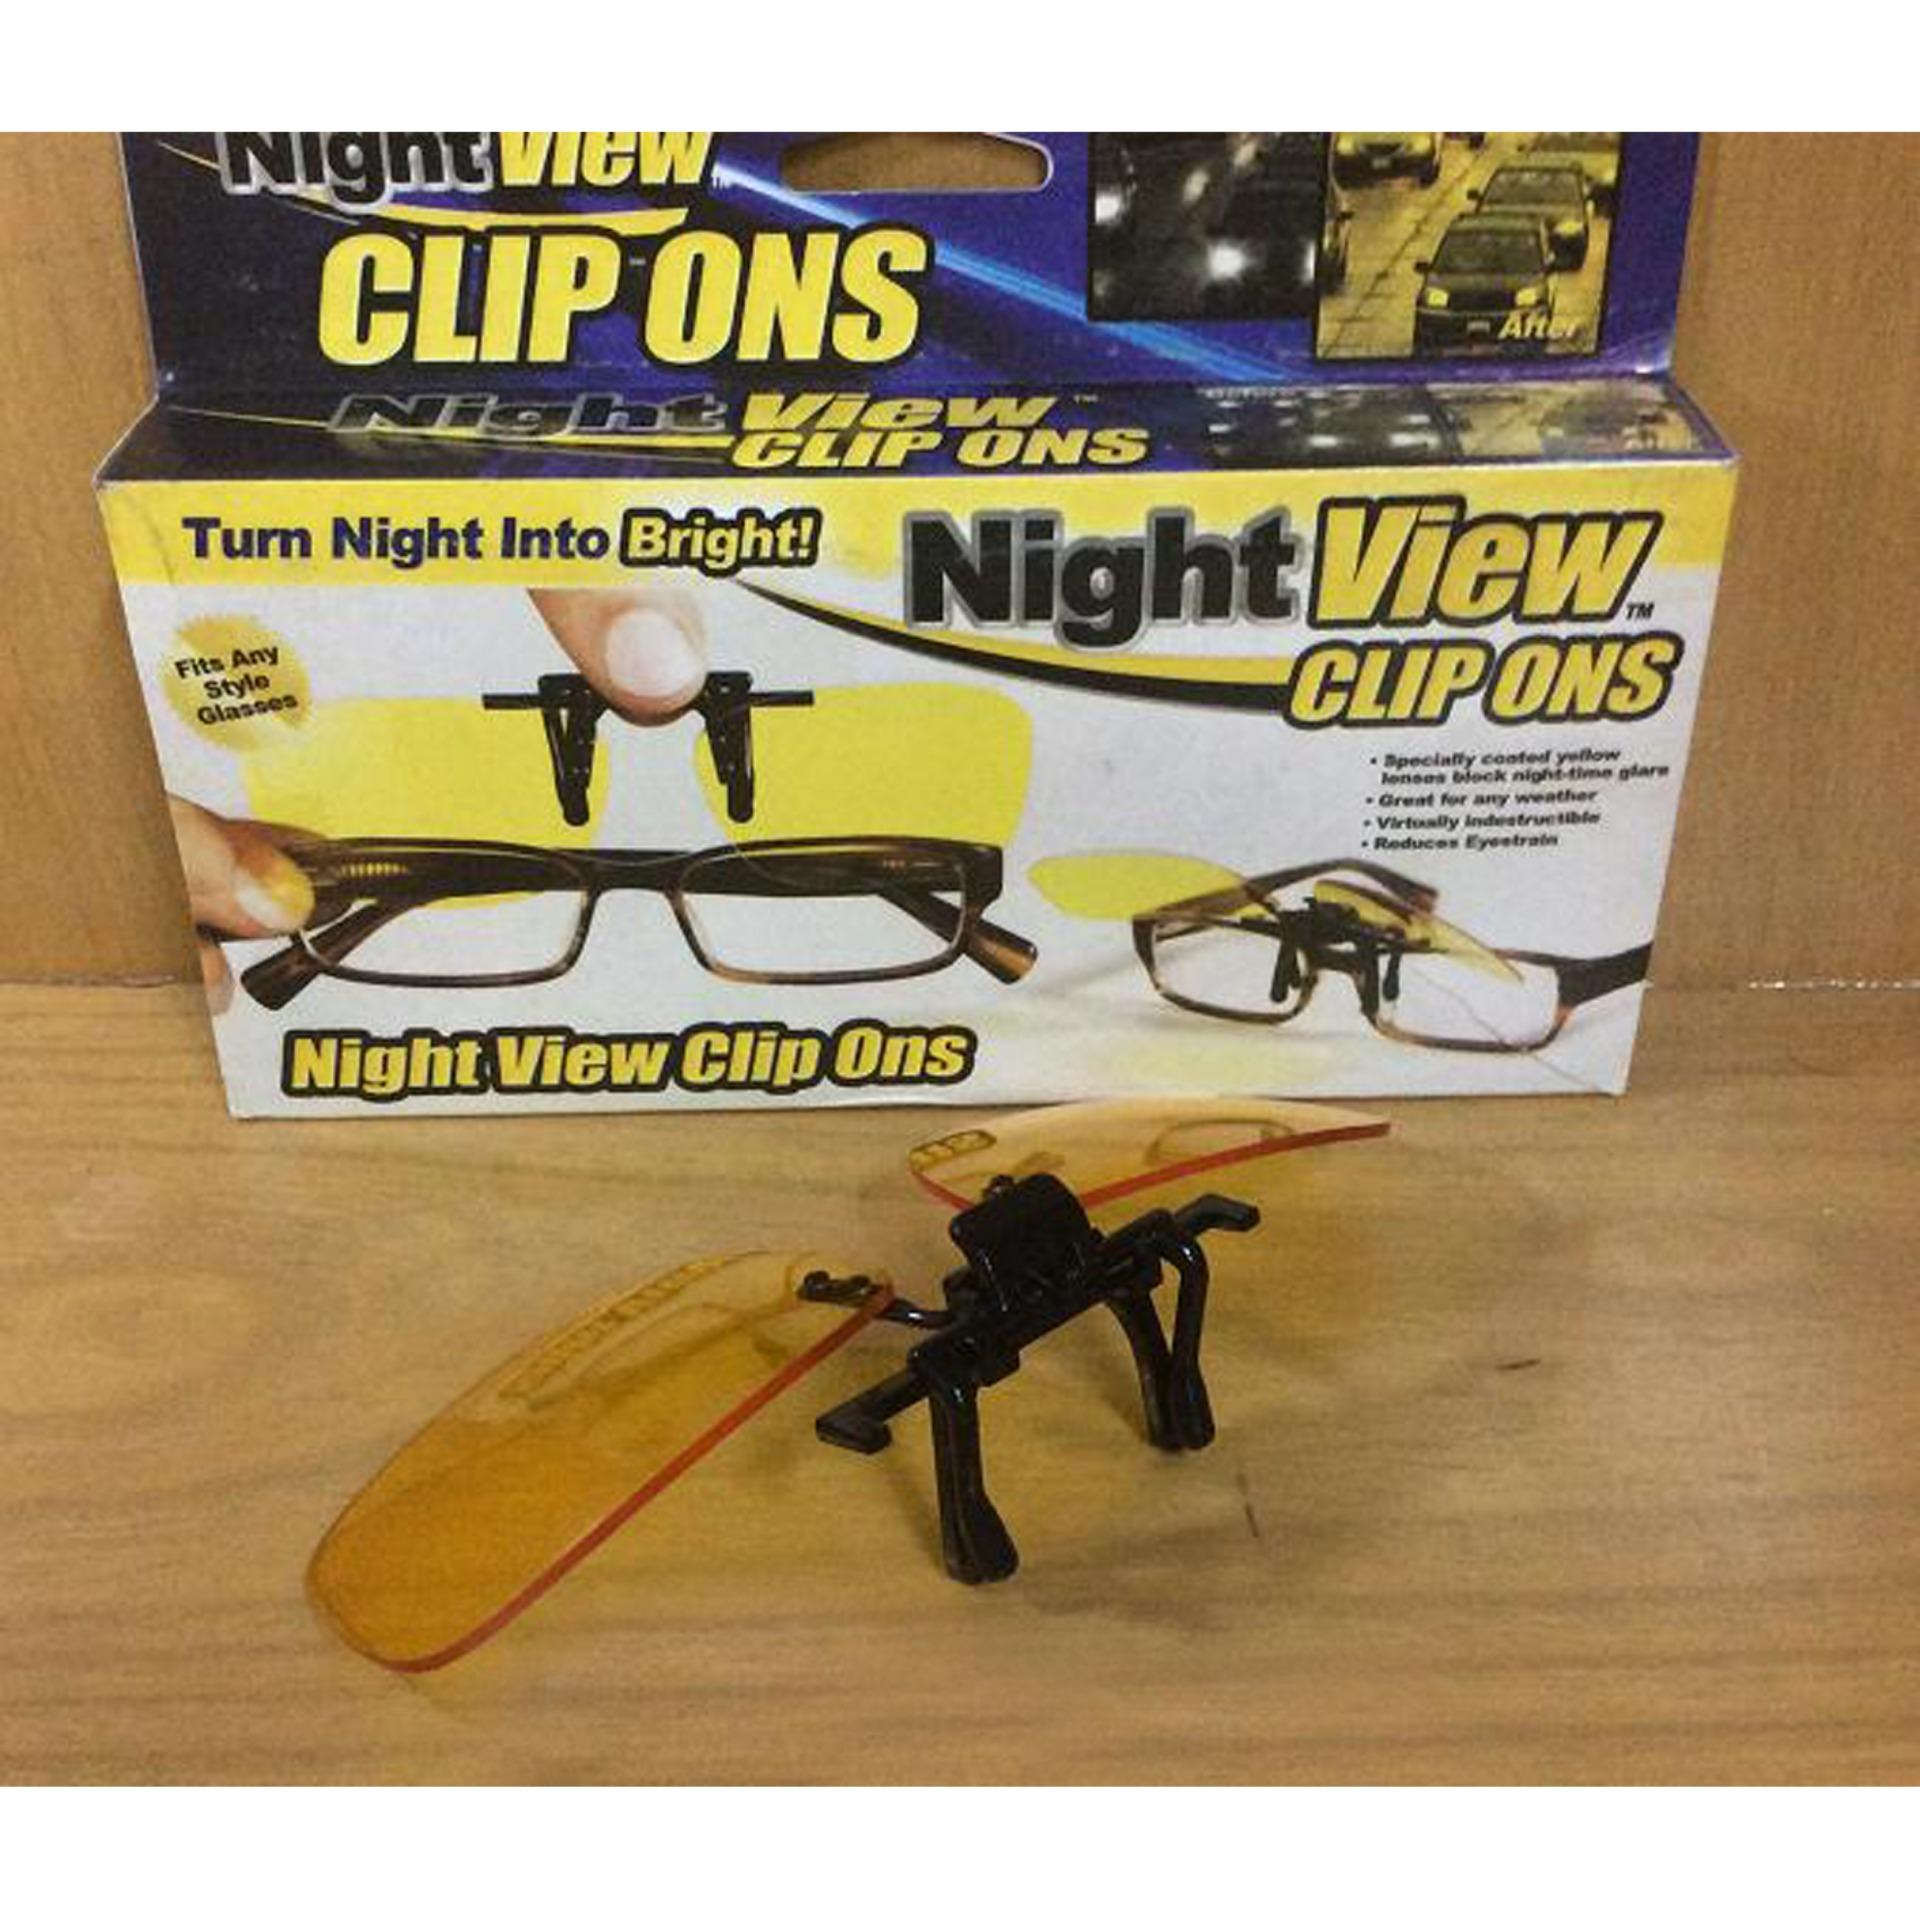 Beli Night View Clip On Kacamata Anti Silau Online